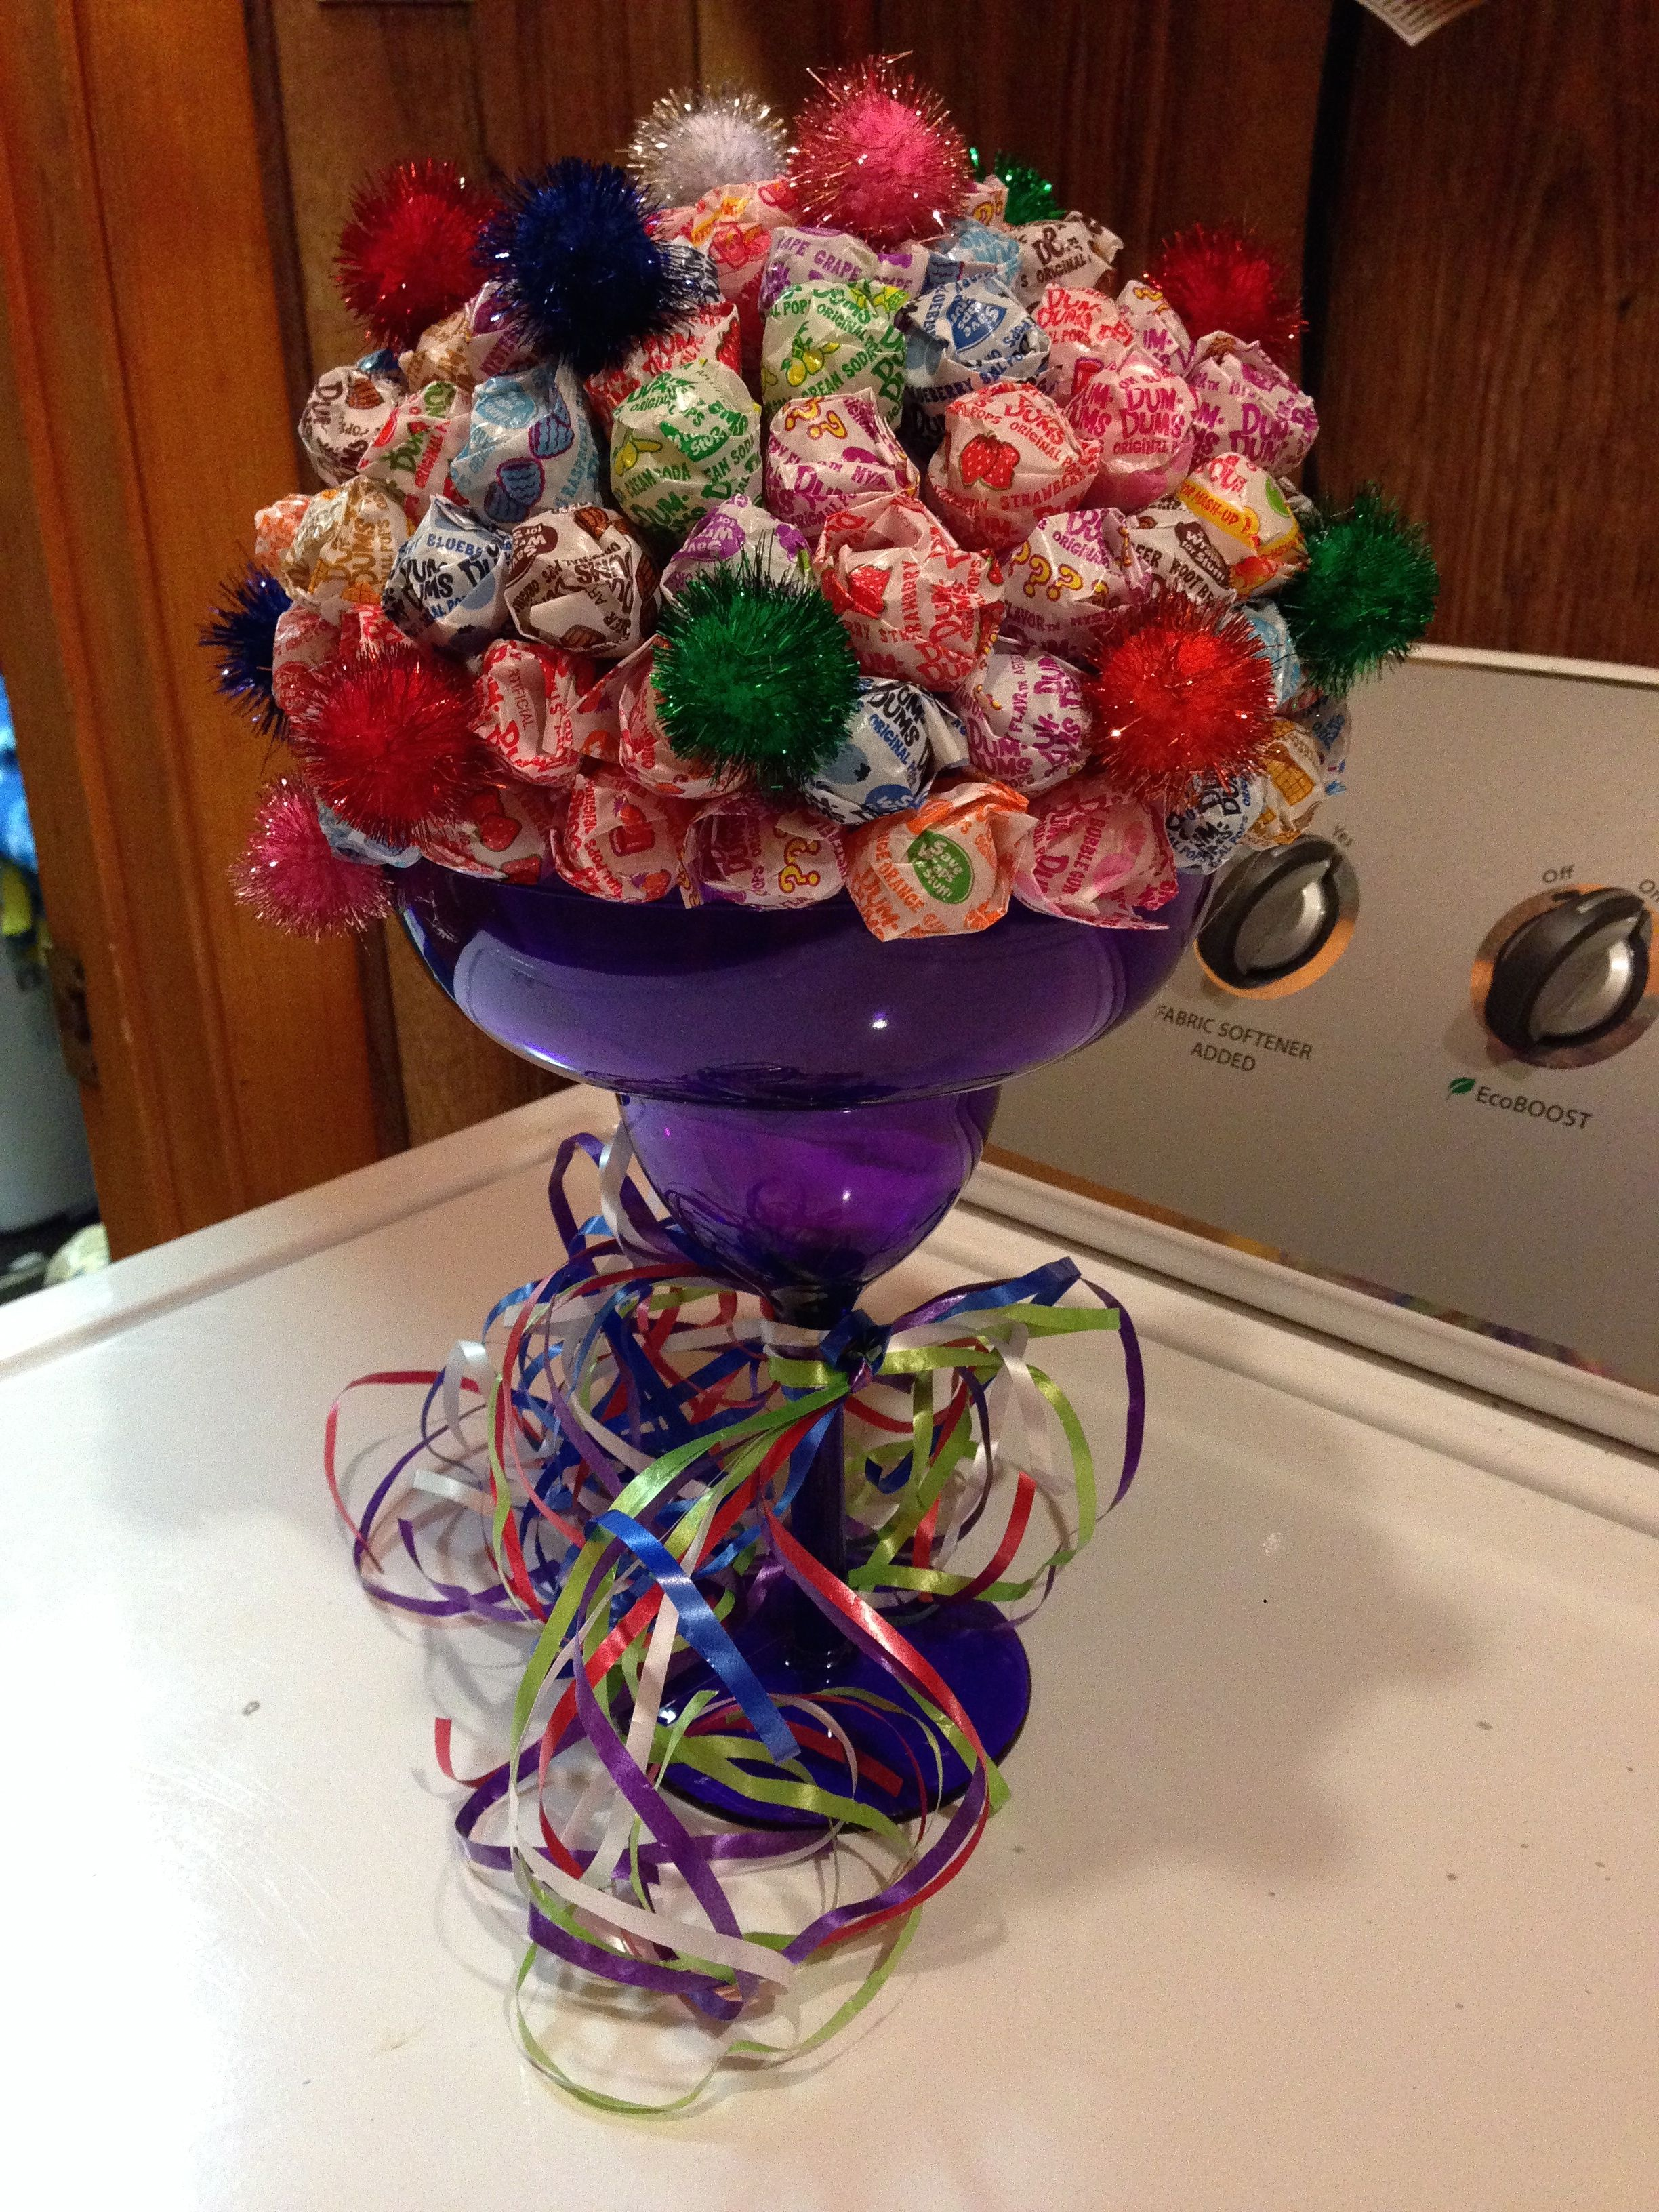 Dum dum margarita candy bouquet by keris kreations keris candy bouquet izmirmasajfo Choice Image